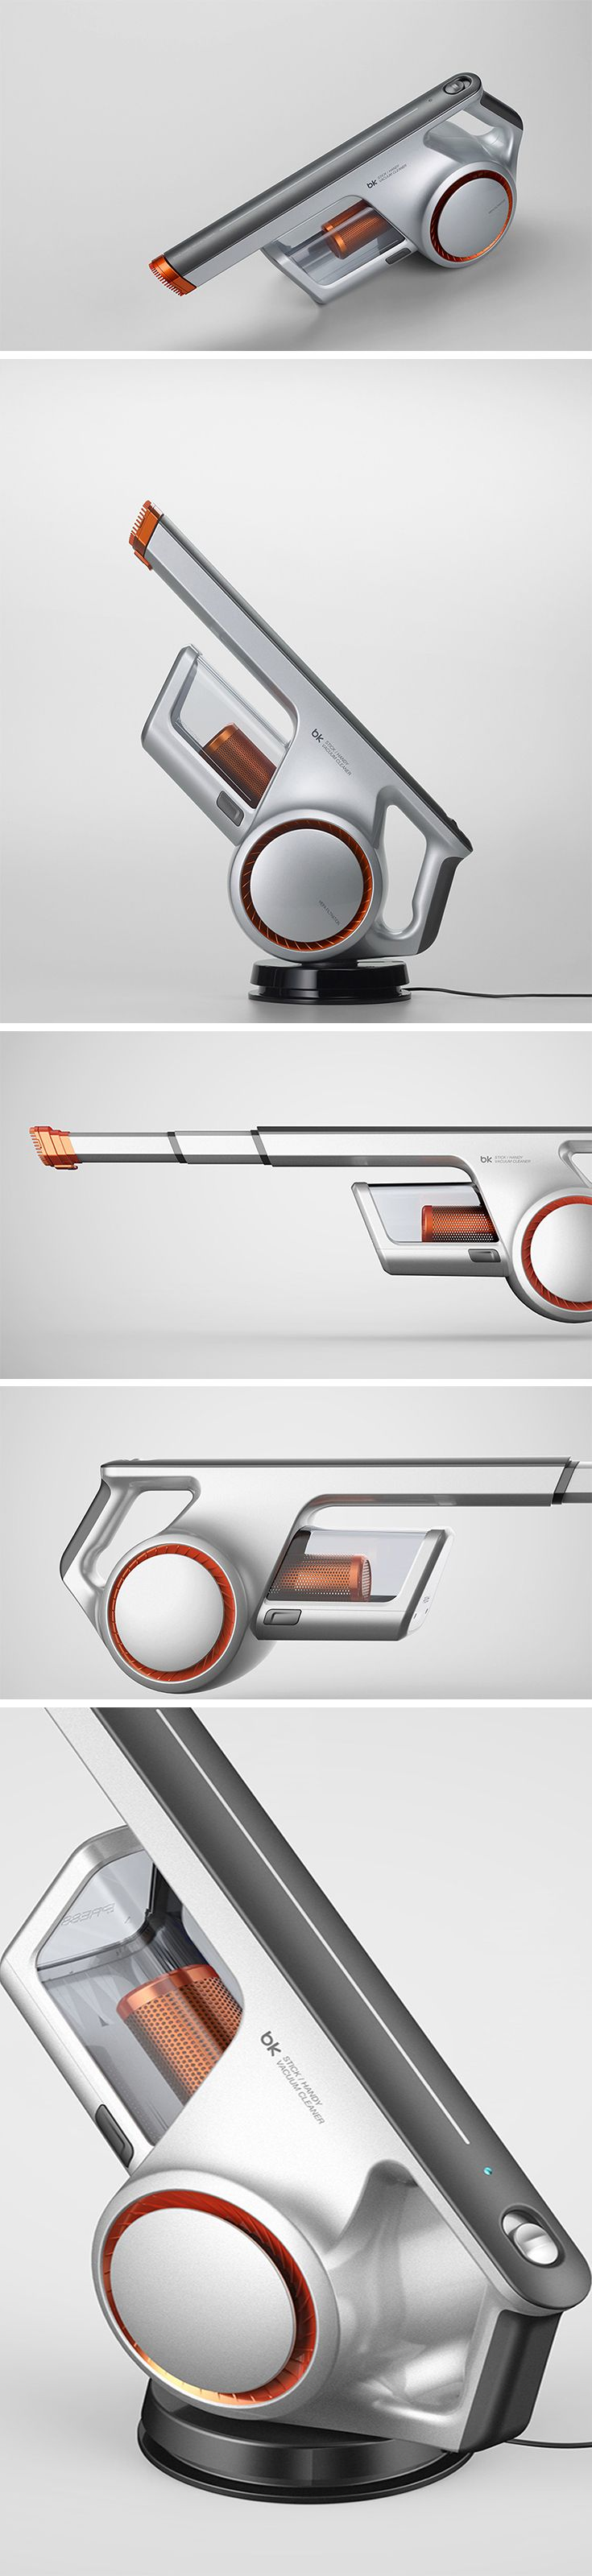 The Handy Vacuum Cleaner designed by Myeonghoon Lee & Yubin Choi is edgy, coming off as intimidating almost, something that you would pick up in the toughest of situations and never bat an eye. This handheld vacuum is a dust-royer. The cyclone and motor located just under the handle, have a visual appearance like that of a futuristic concept bike, adding a subtle flair with the orange highlight.